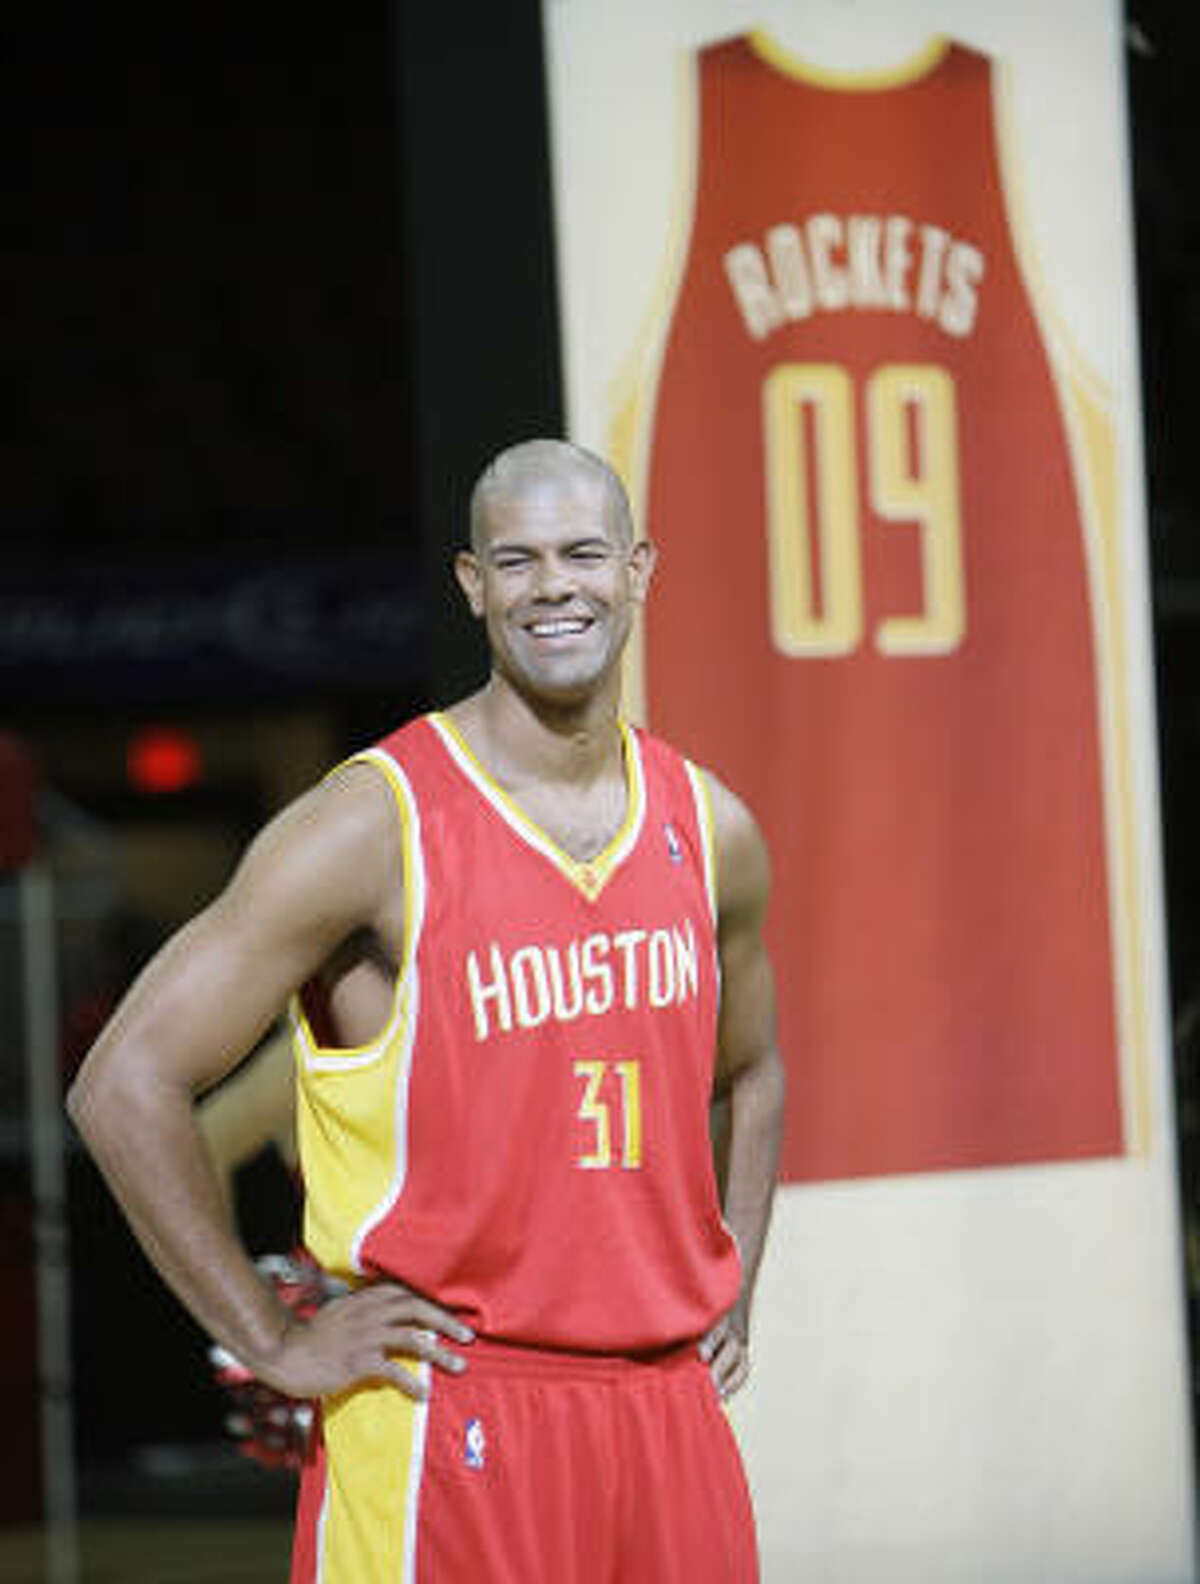 Unveiled in September, the Rockets' newest jerseys will serve as an occasional alternative to the team's current red-and-white combinations.